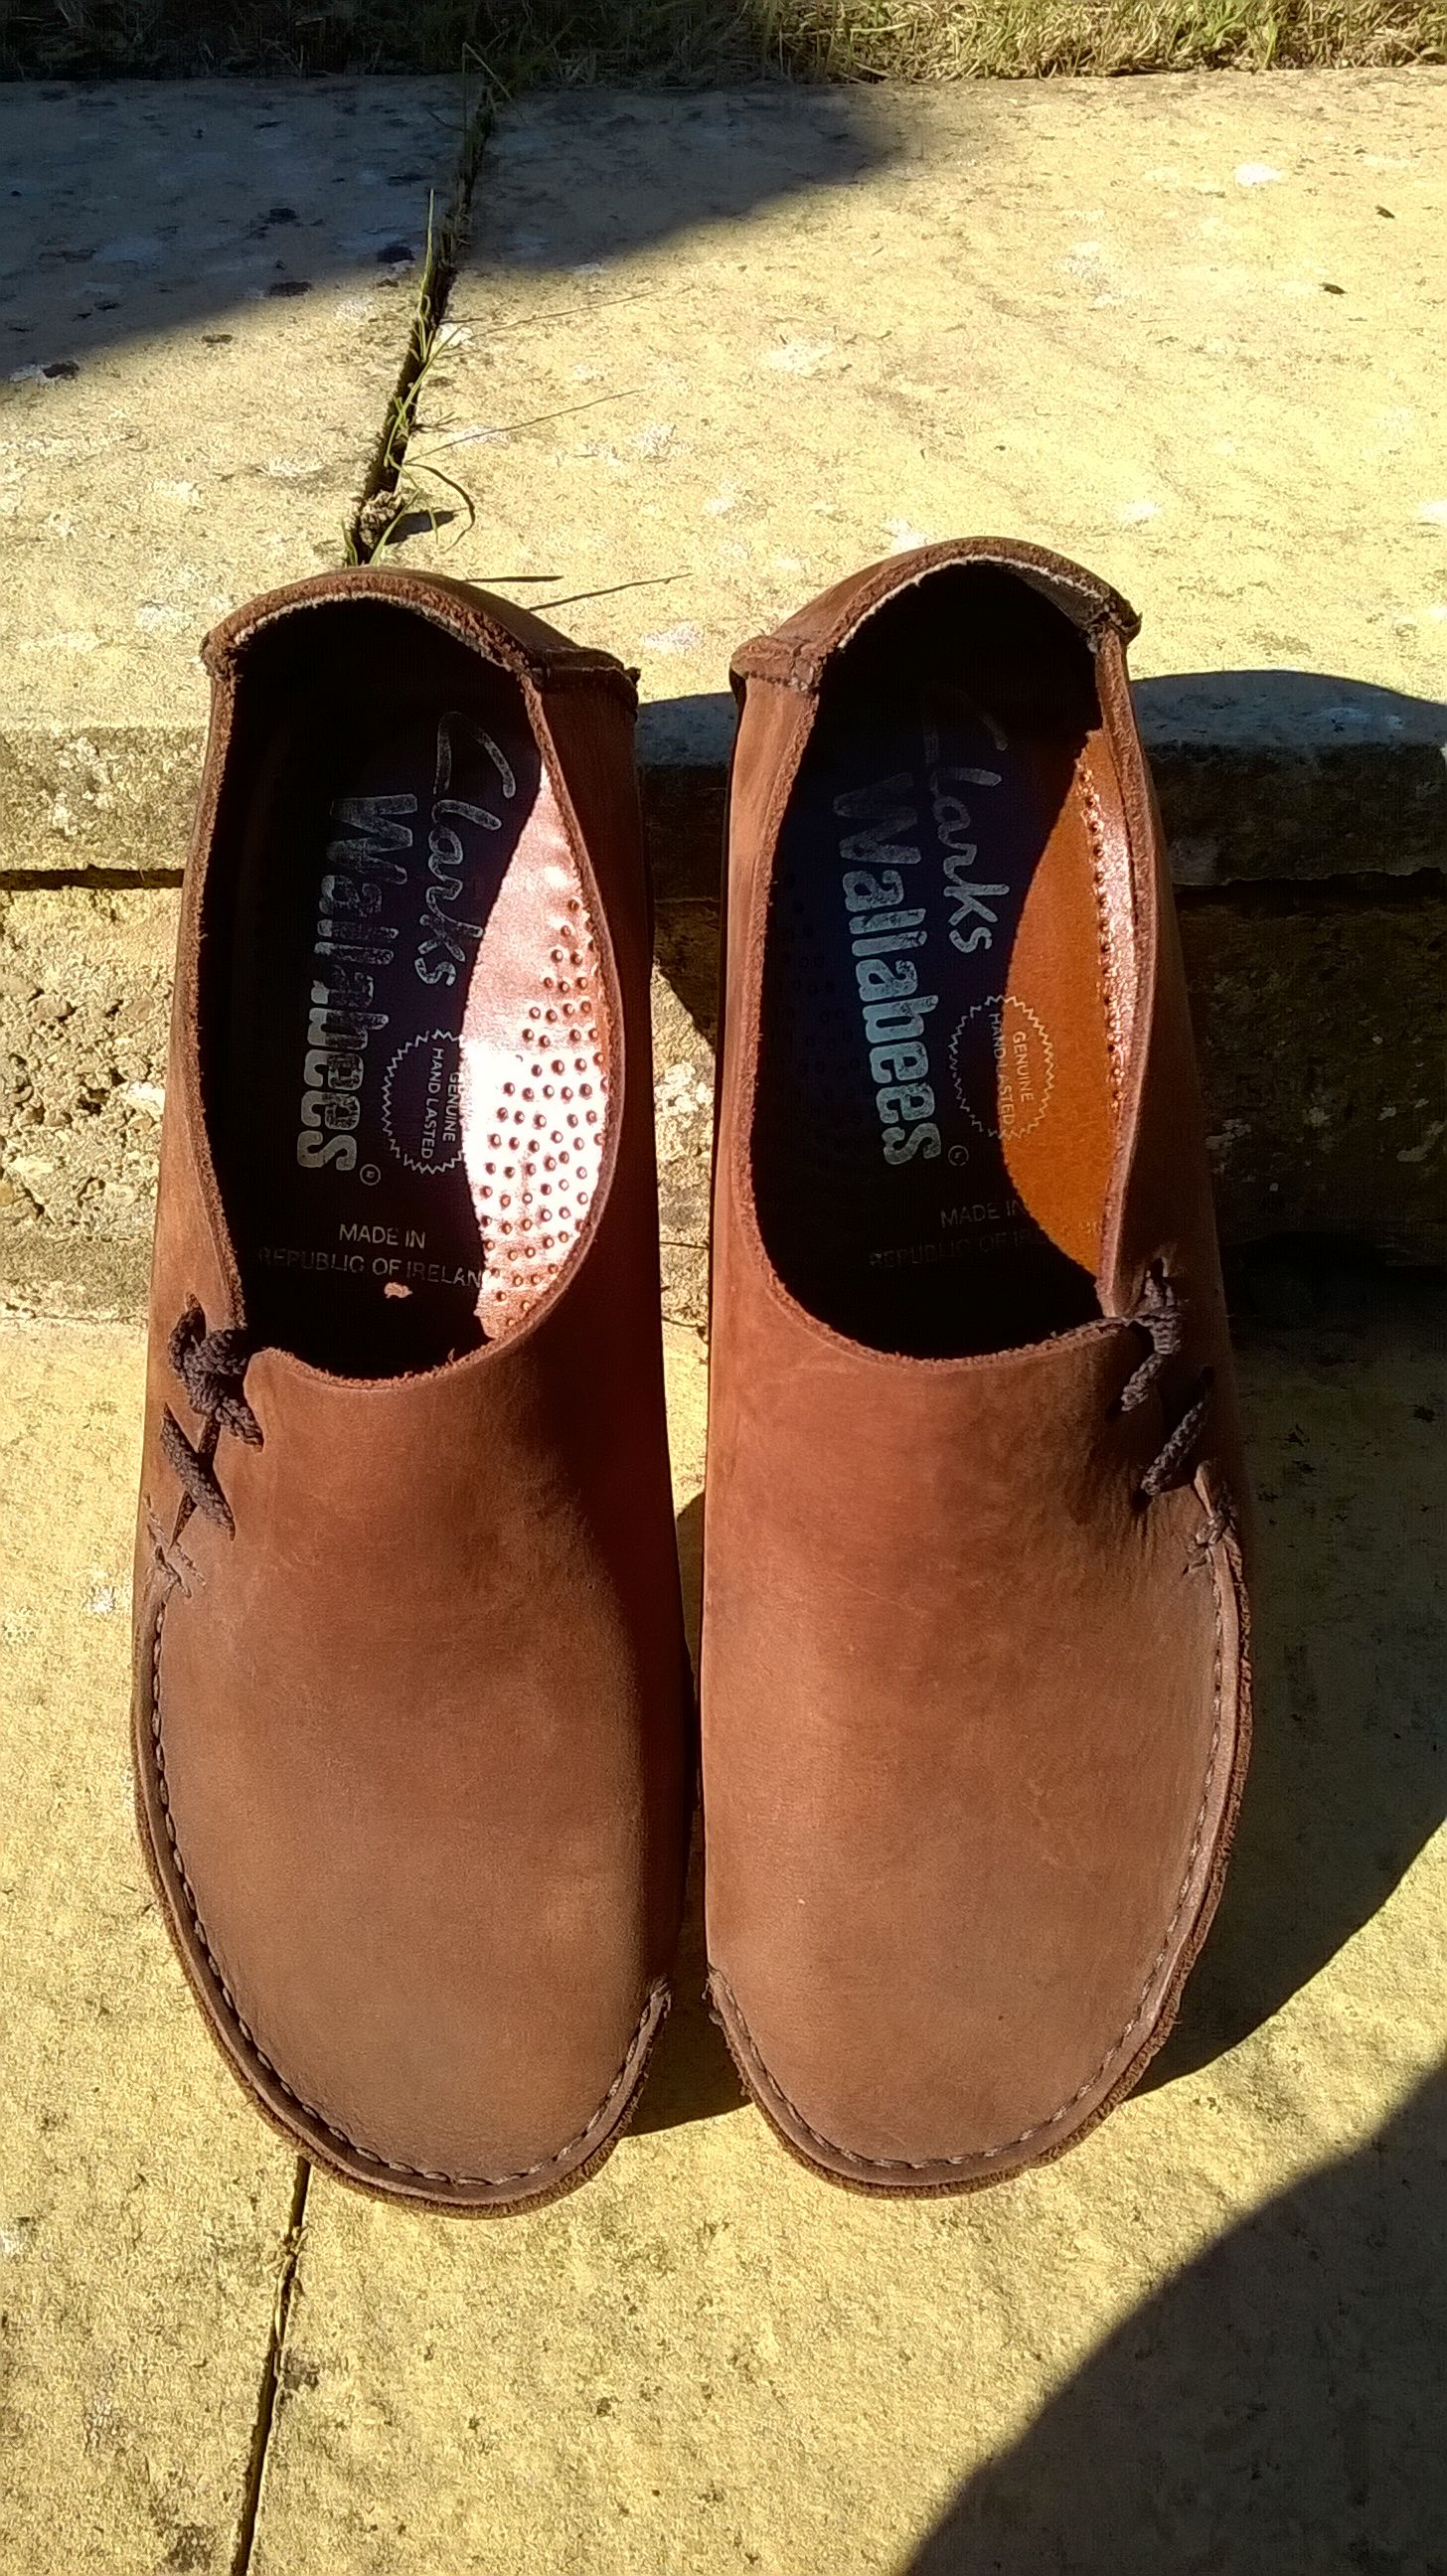 ab9018c60b28 Vintage Clarks Wallabees (Lugger) Brown (nubuck) leather Made In Republic  Of Ireland